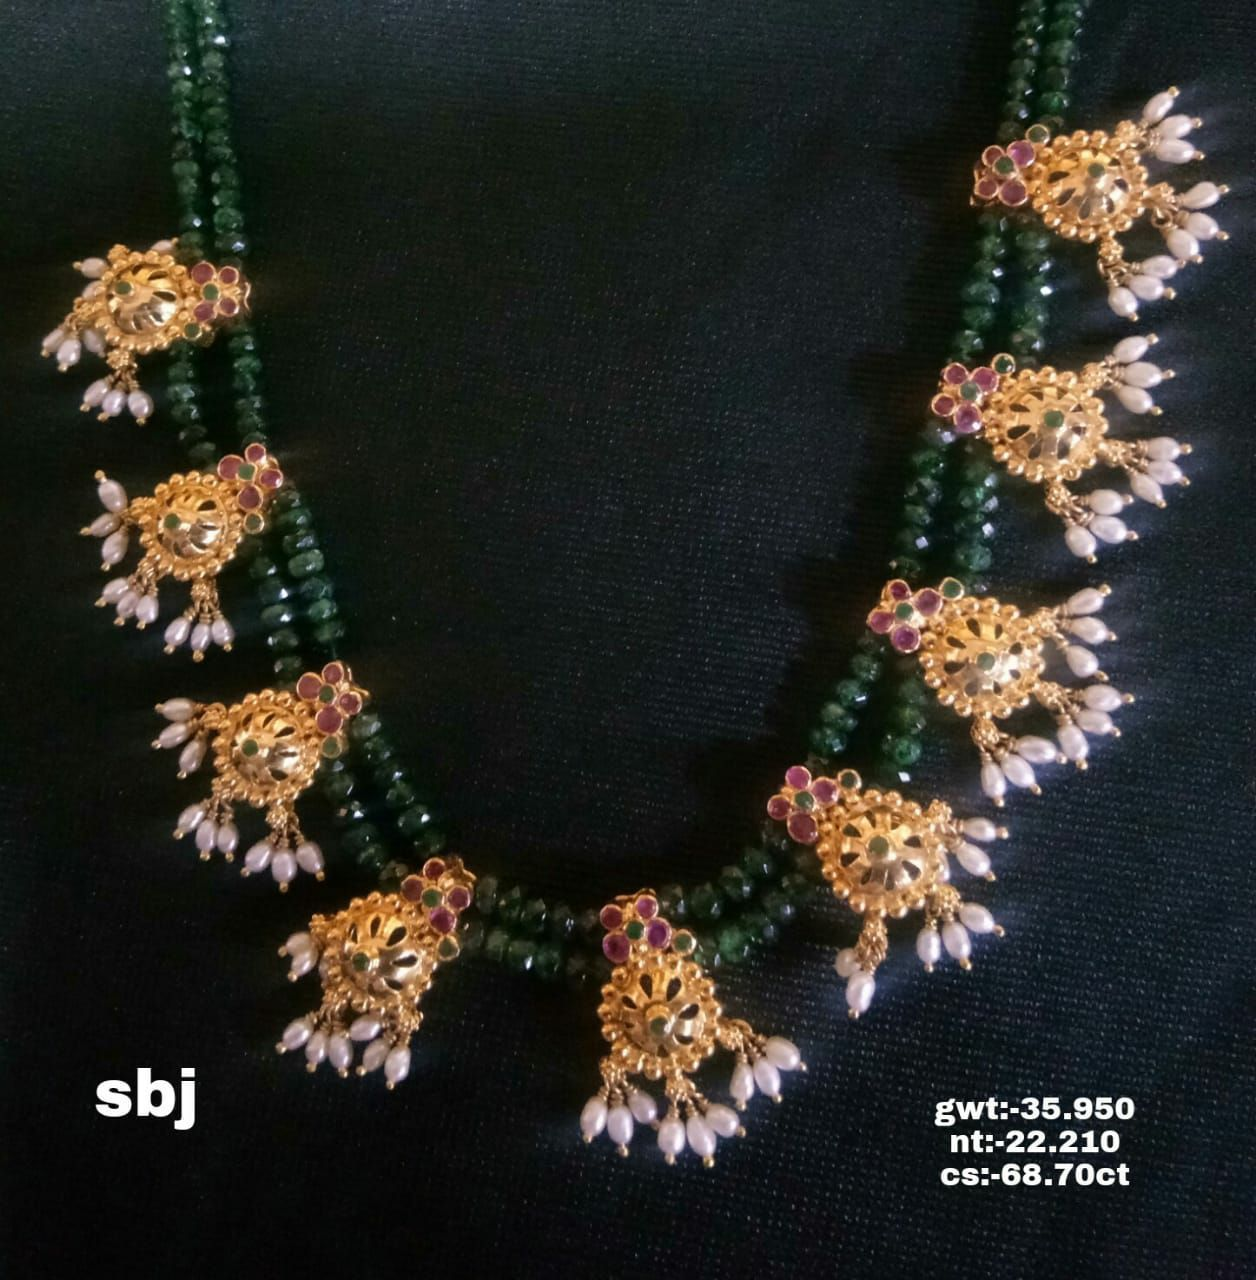 Light budget botu mala wow collections sbj necklace with rice